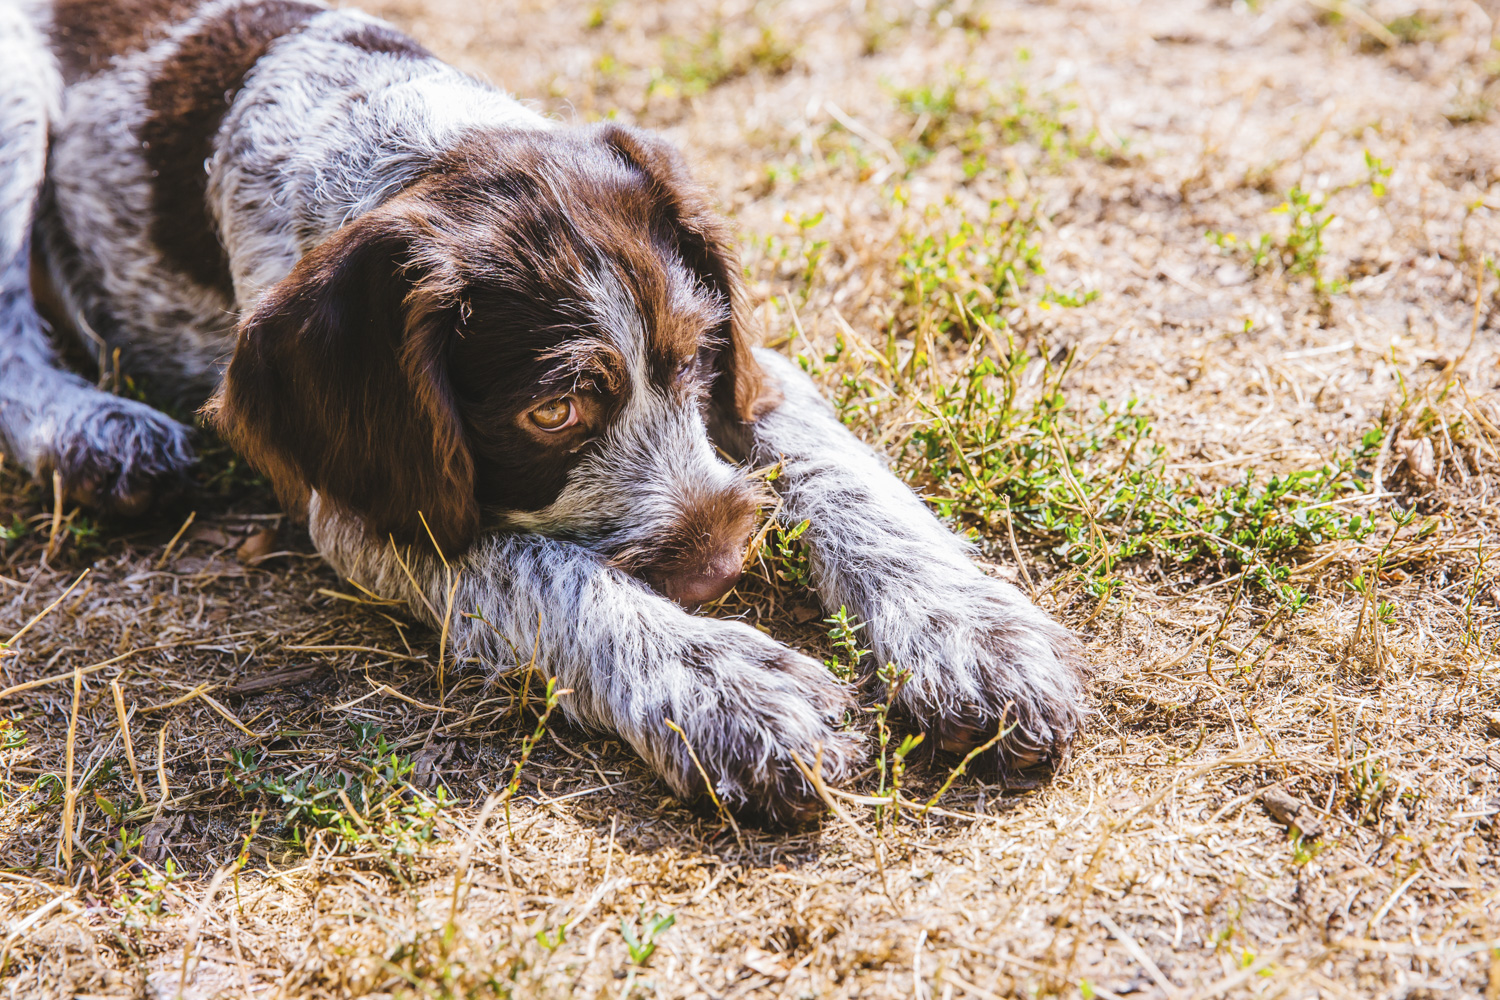 I think I just found my future breed of pup to get. ANYWAYS! Meet this sweet boy, Louie Clyde. He is a 5-month-old German Wirehaired Pointer and makes our hearts swell. Louie Clyde is a busy guy and will get fairly tall and active. His mom is a runner and the whole fam is also active so they are expected to have a lot of fun adventures together! Louie likes playing with other pups, his family, his stuffed bunny, a good tennis ball, walks to the lake, love and attention, and snuggling up on furniture after a hard day of playing. He dislikes car rides, boredom, and vacuums. (Image: Sunita Martini / Seattle Refined)